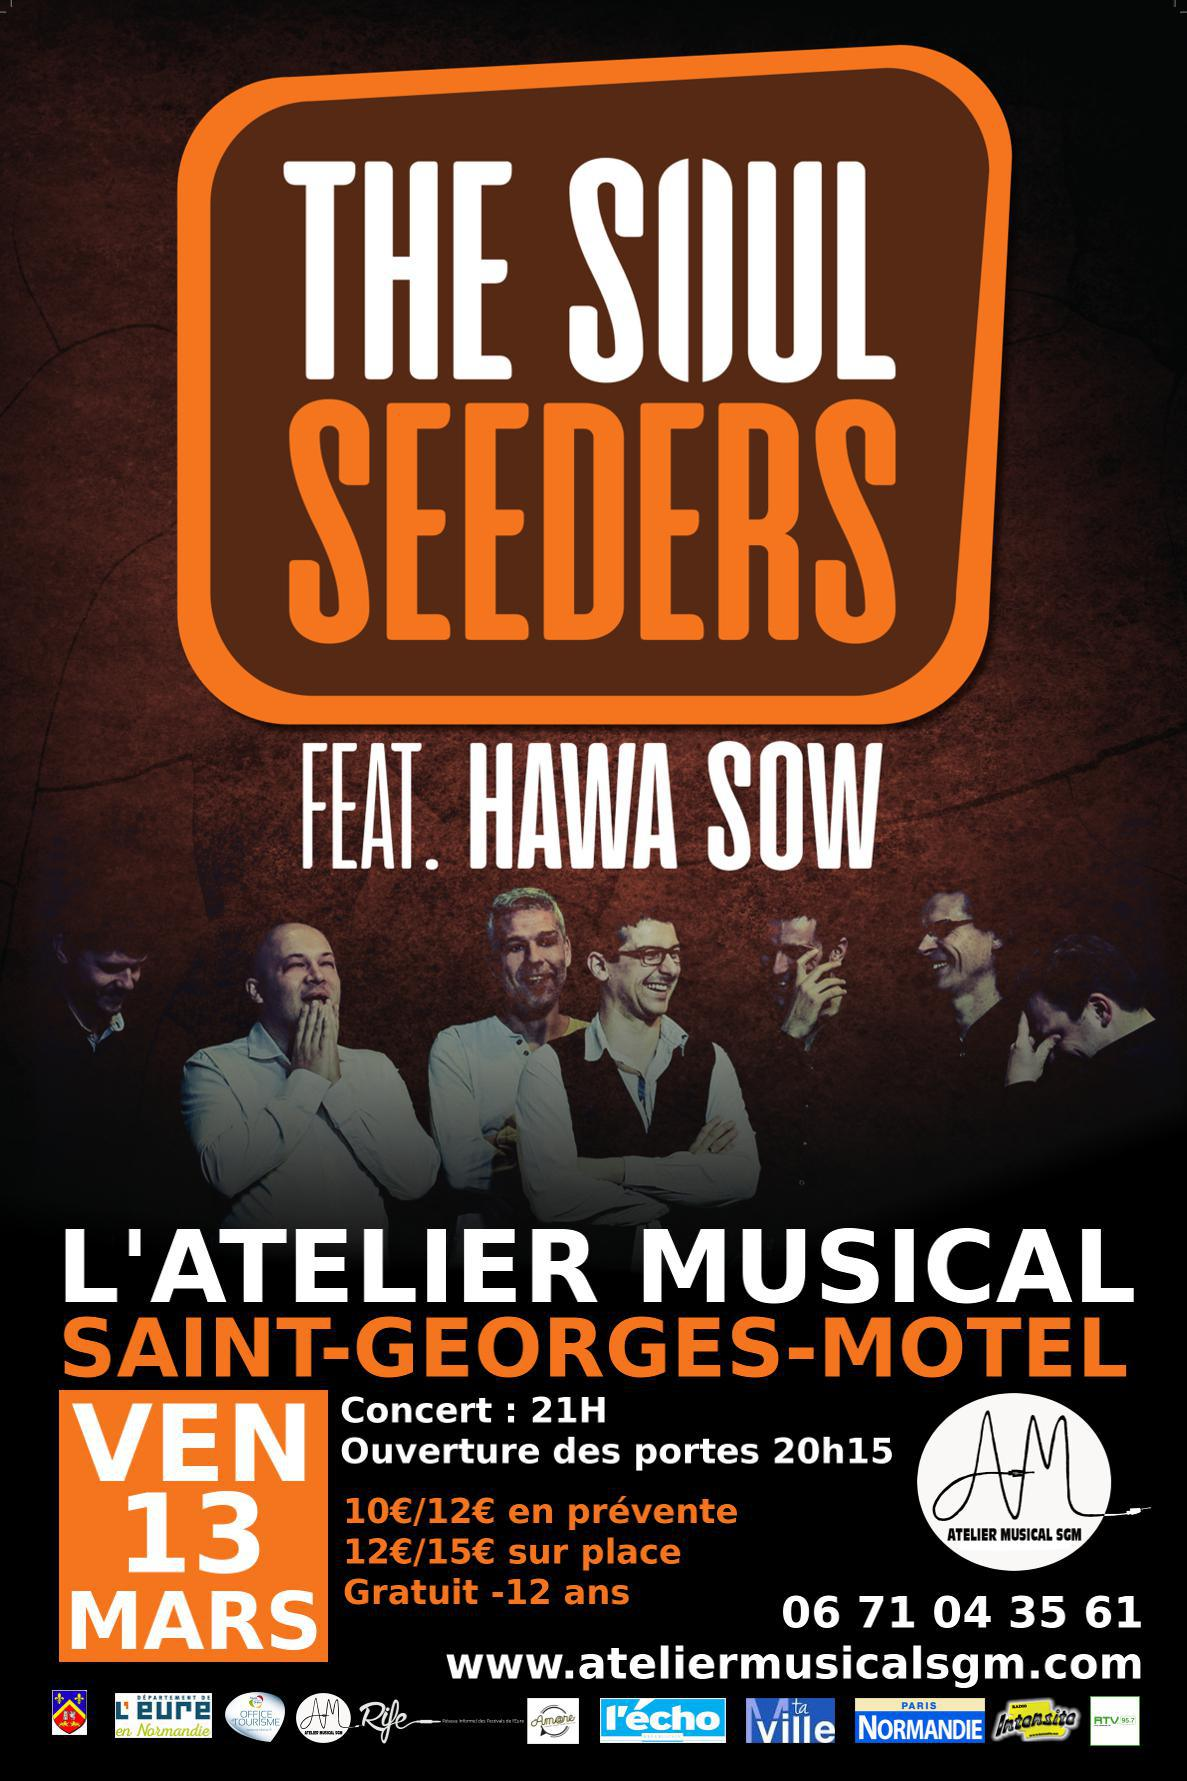 THE SOUL SEEDERS FEAT. HAWA SOW